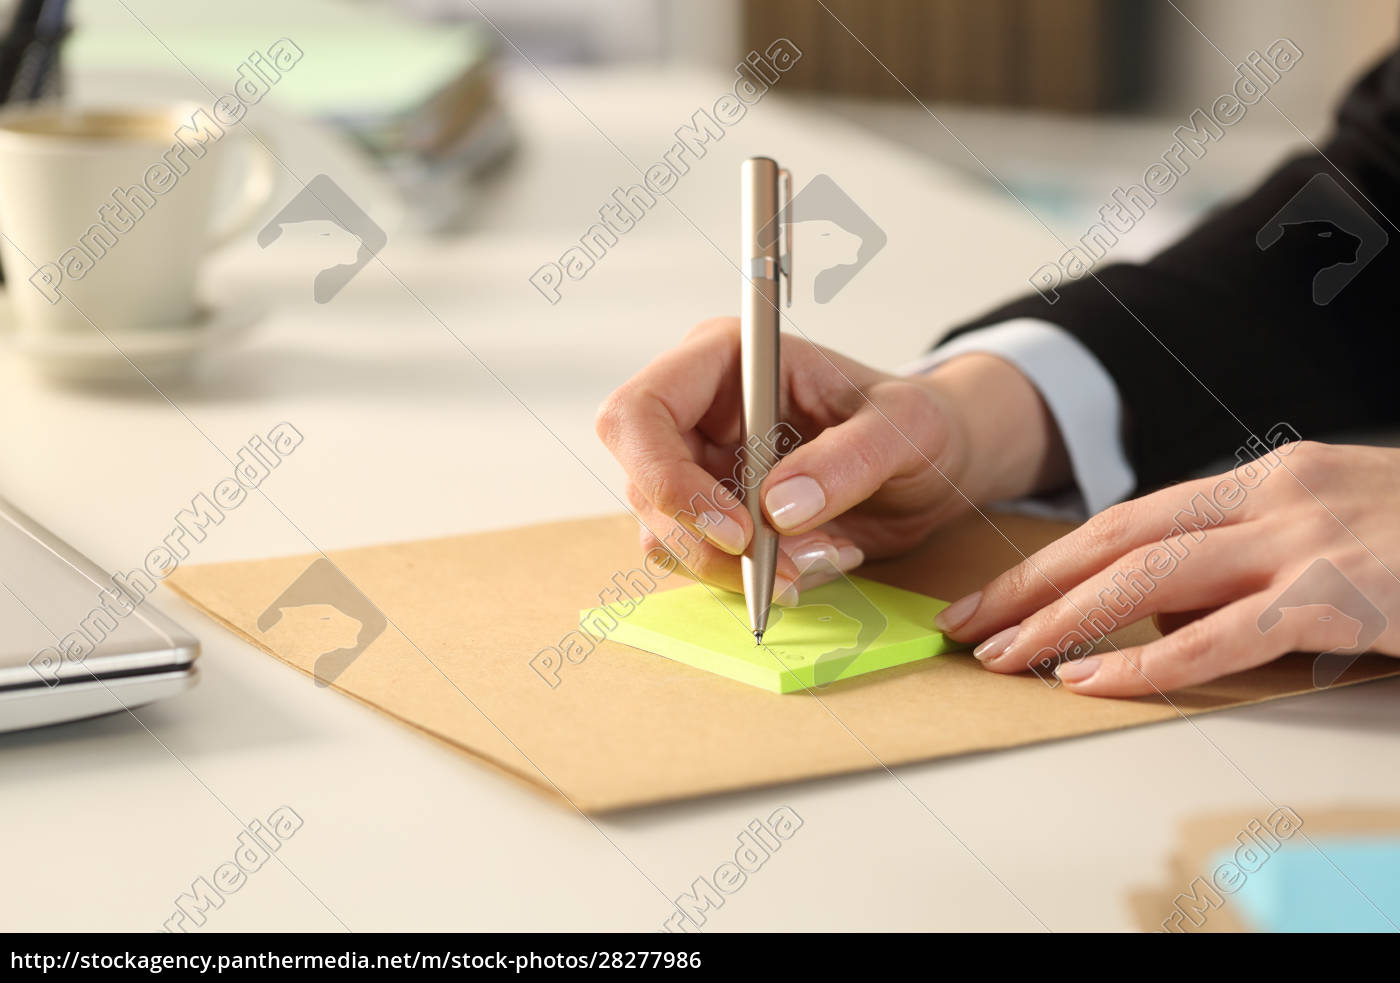 executive, hands, writing, on, sticky, notes - 28277986